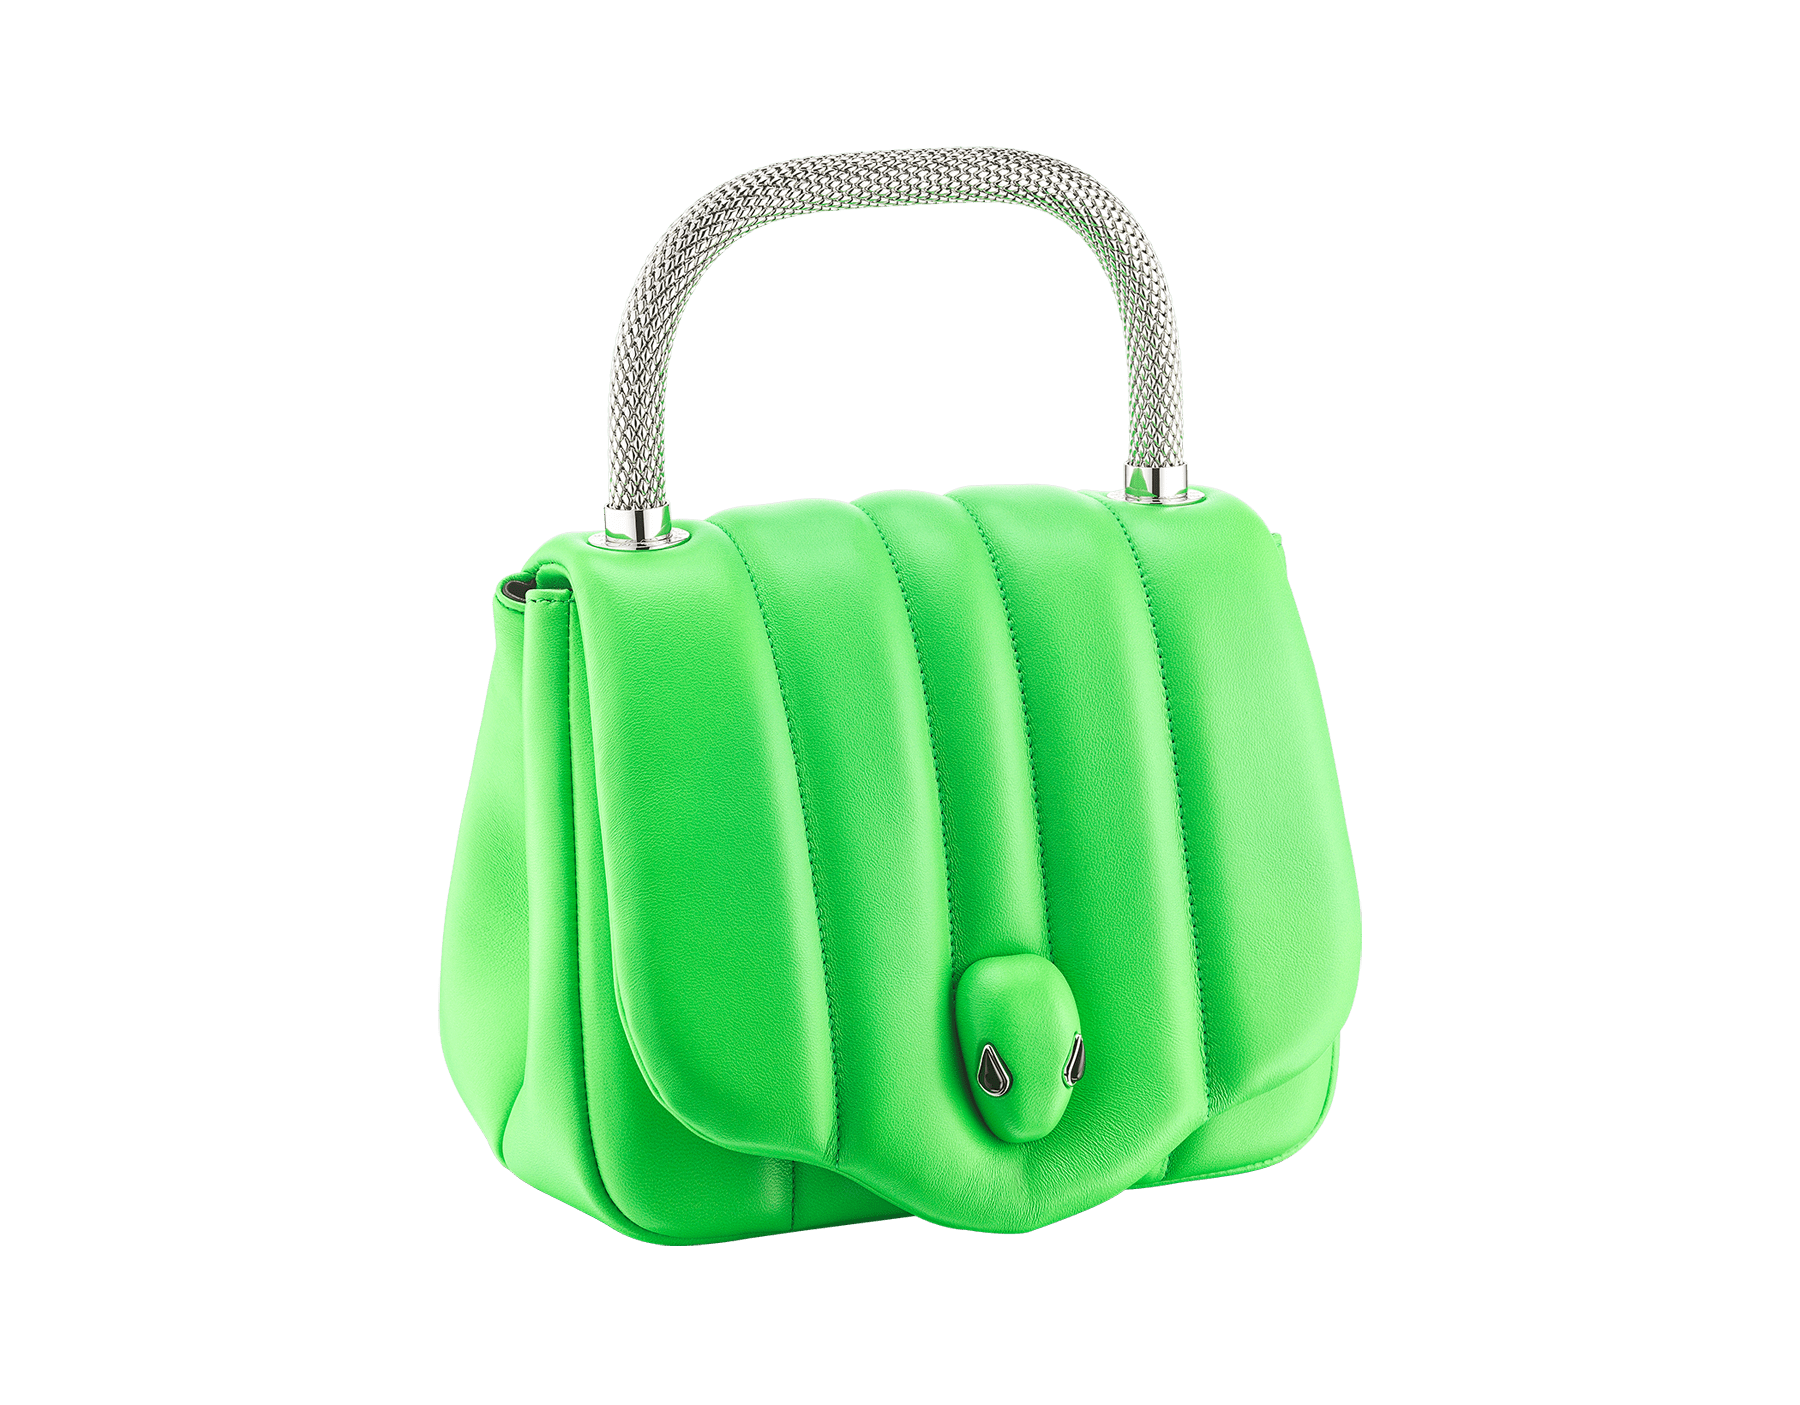 """Ambush x Bvlgari"" top handle bag in bright green nappa leather. New Serpenti head closure in palladium plated brass dressed with bright green nappa leather, finished with seductive black onyx eyes. Limited edition. 290346 image 2"